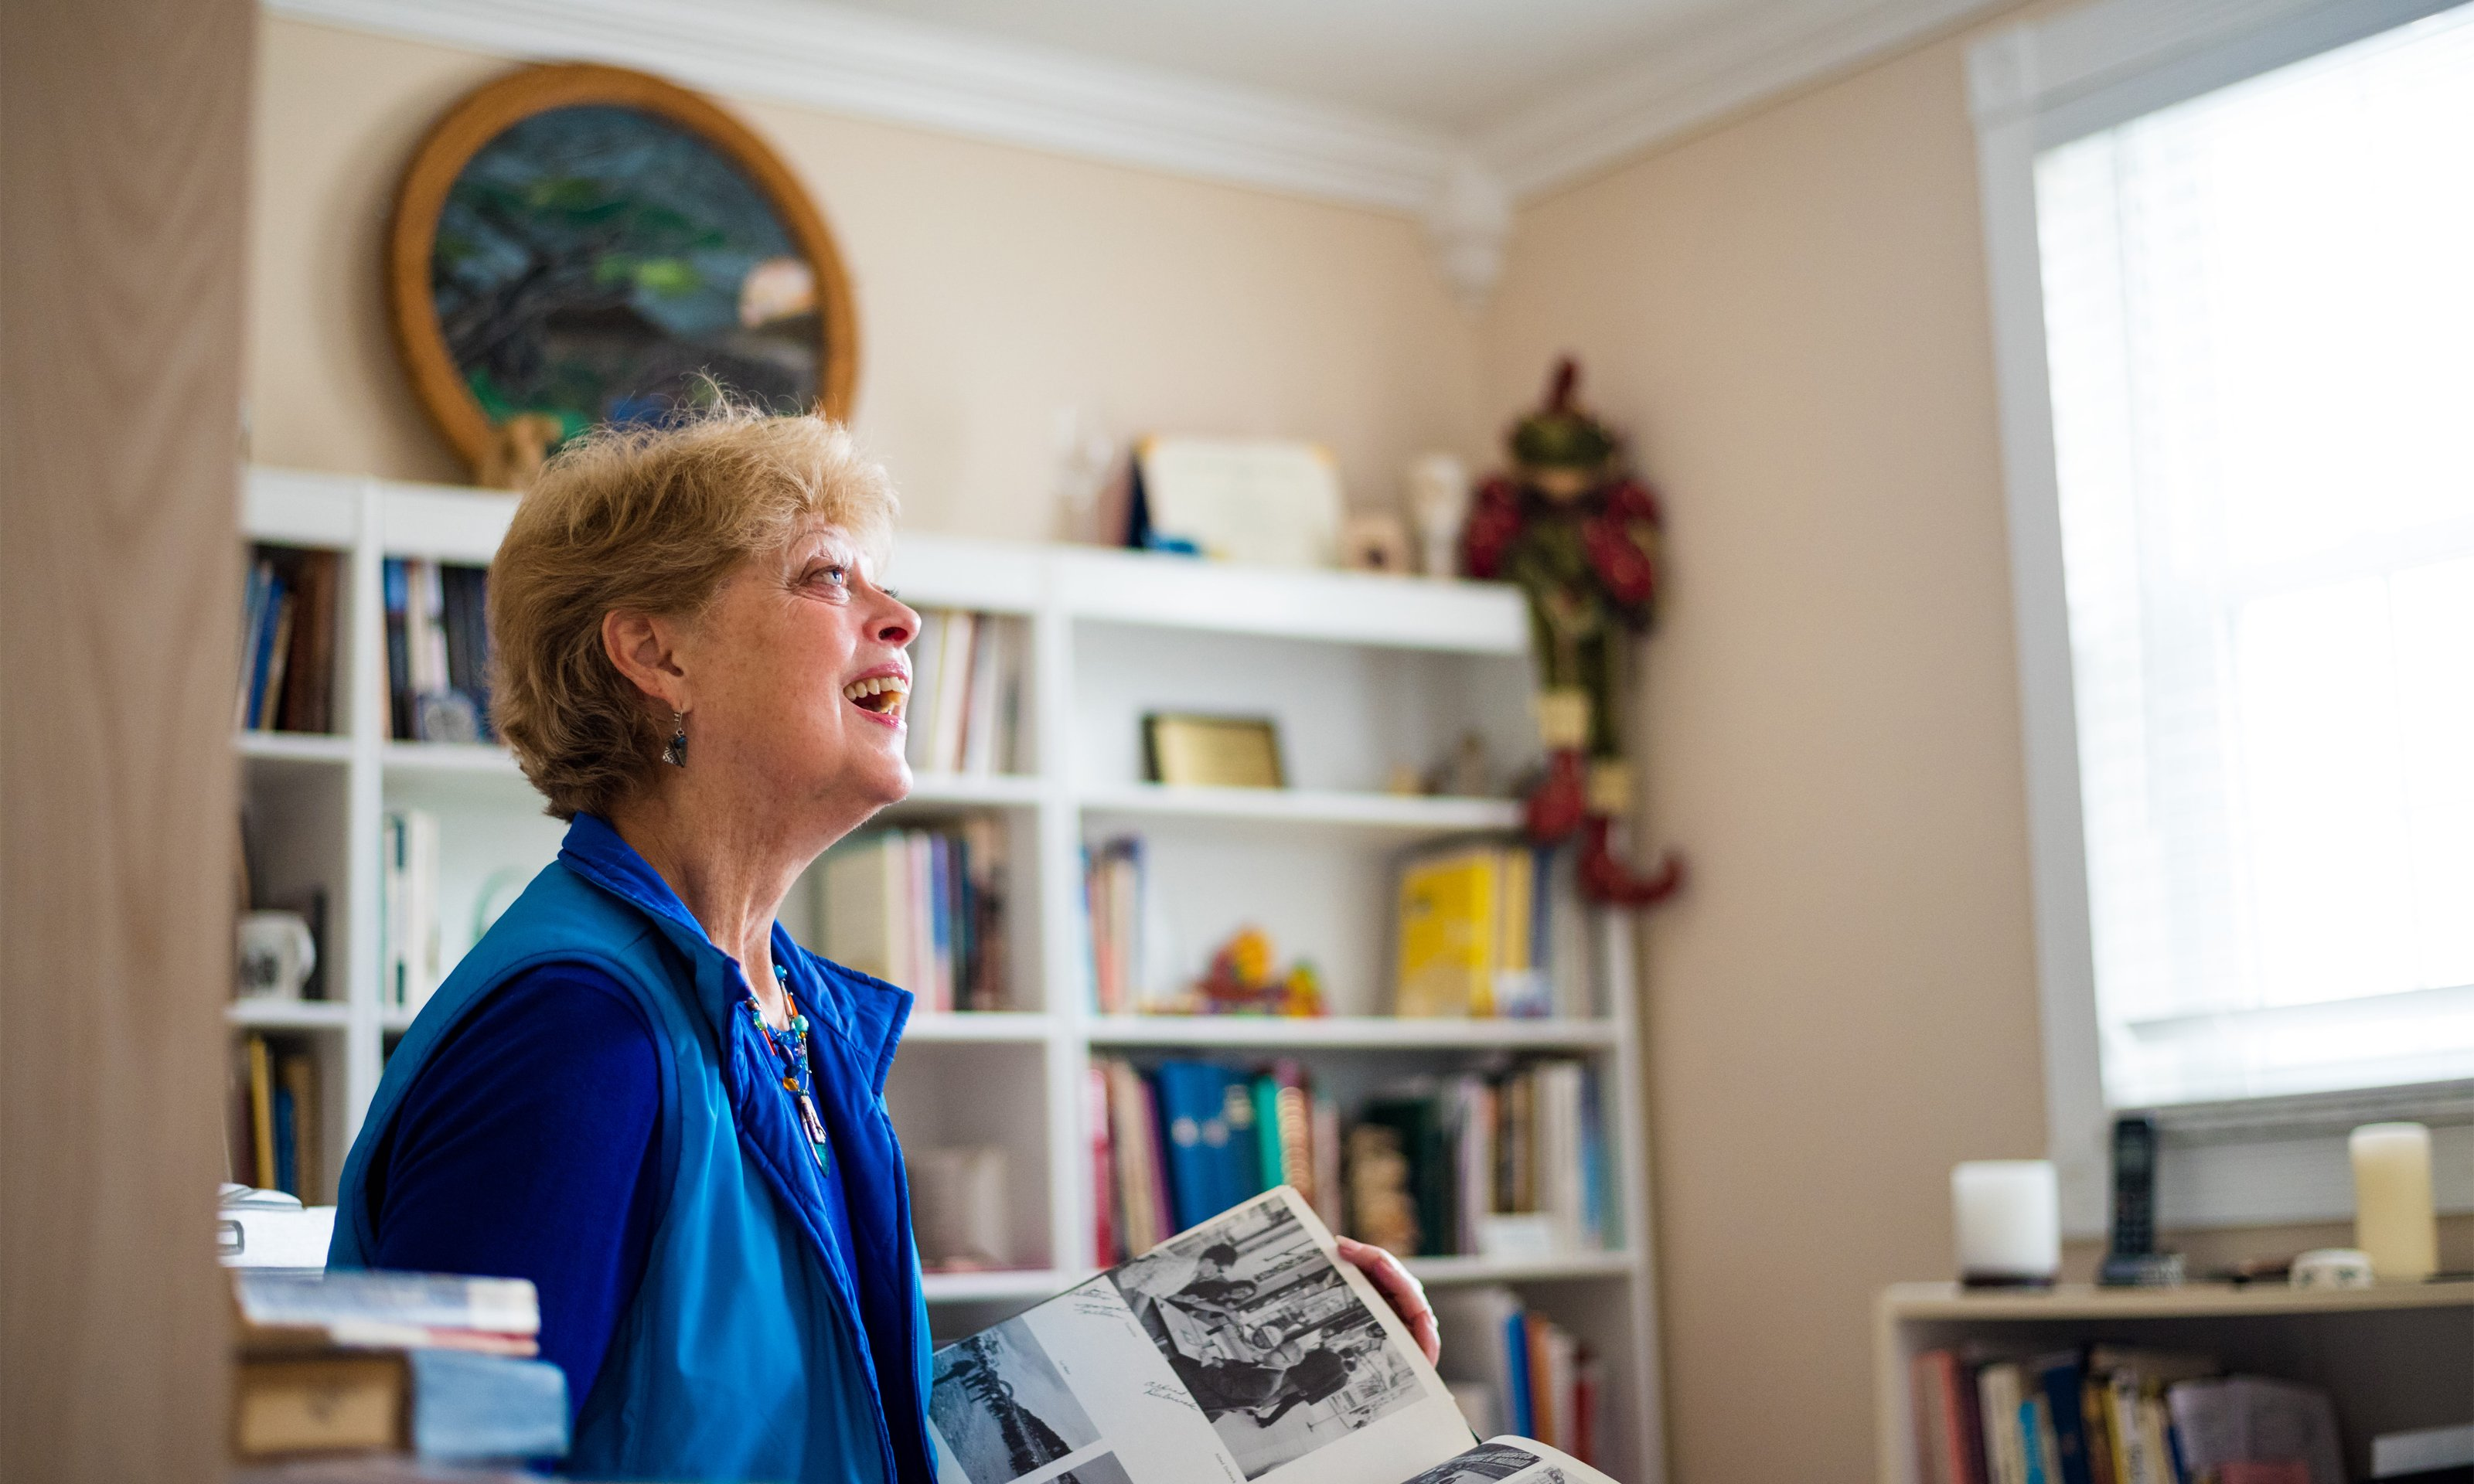 Oakland University alumna Kate Thoresen looks at an old yearbook in her home